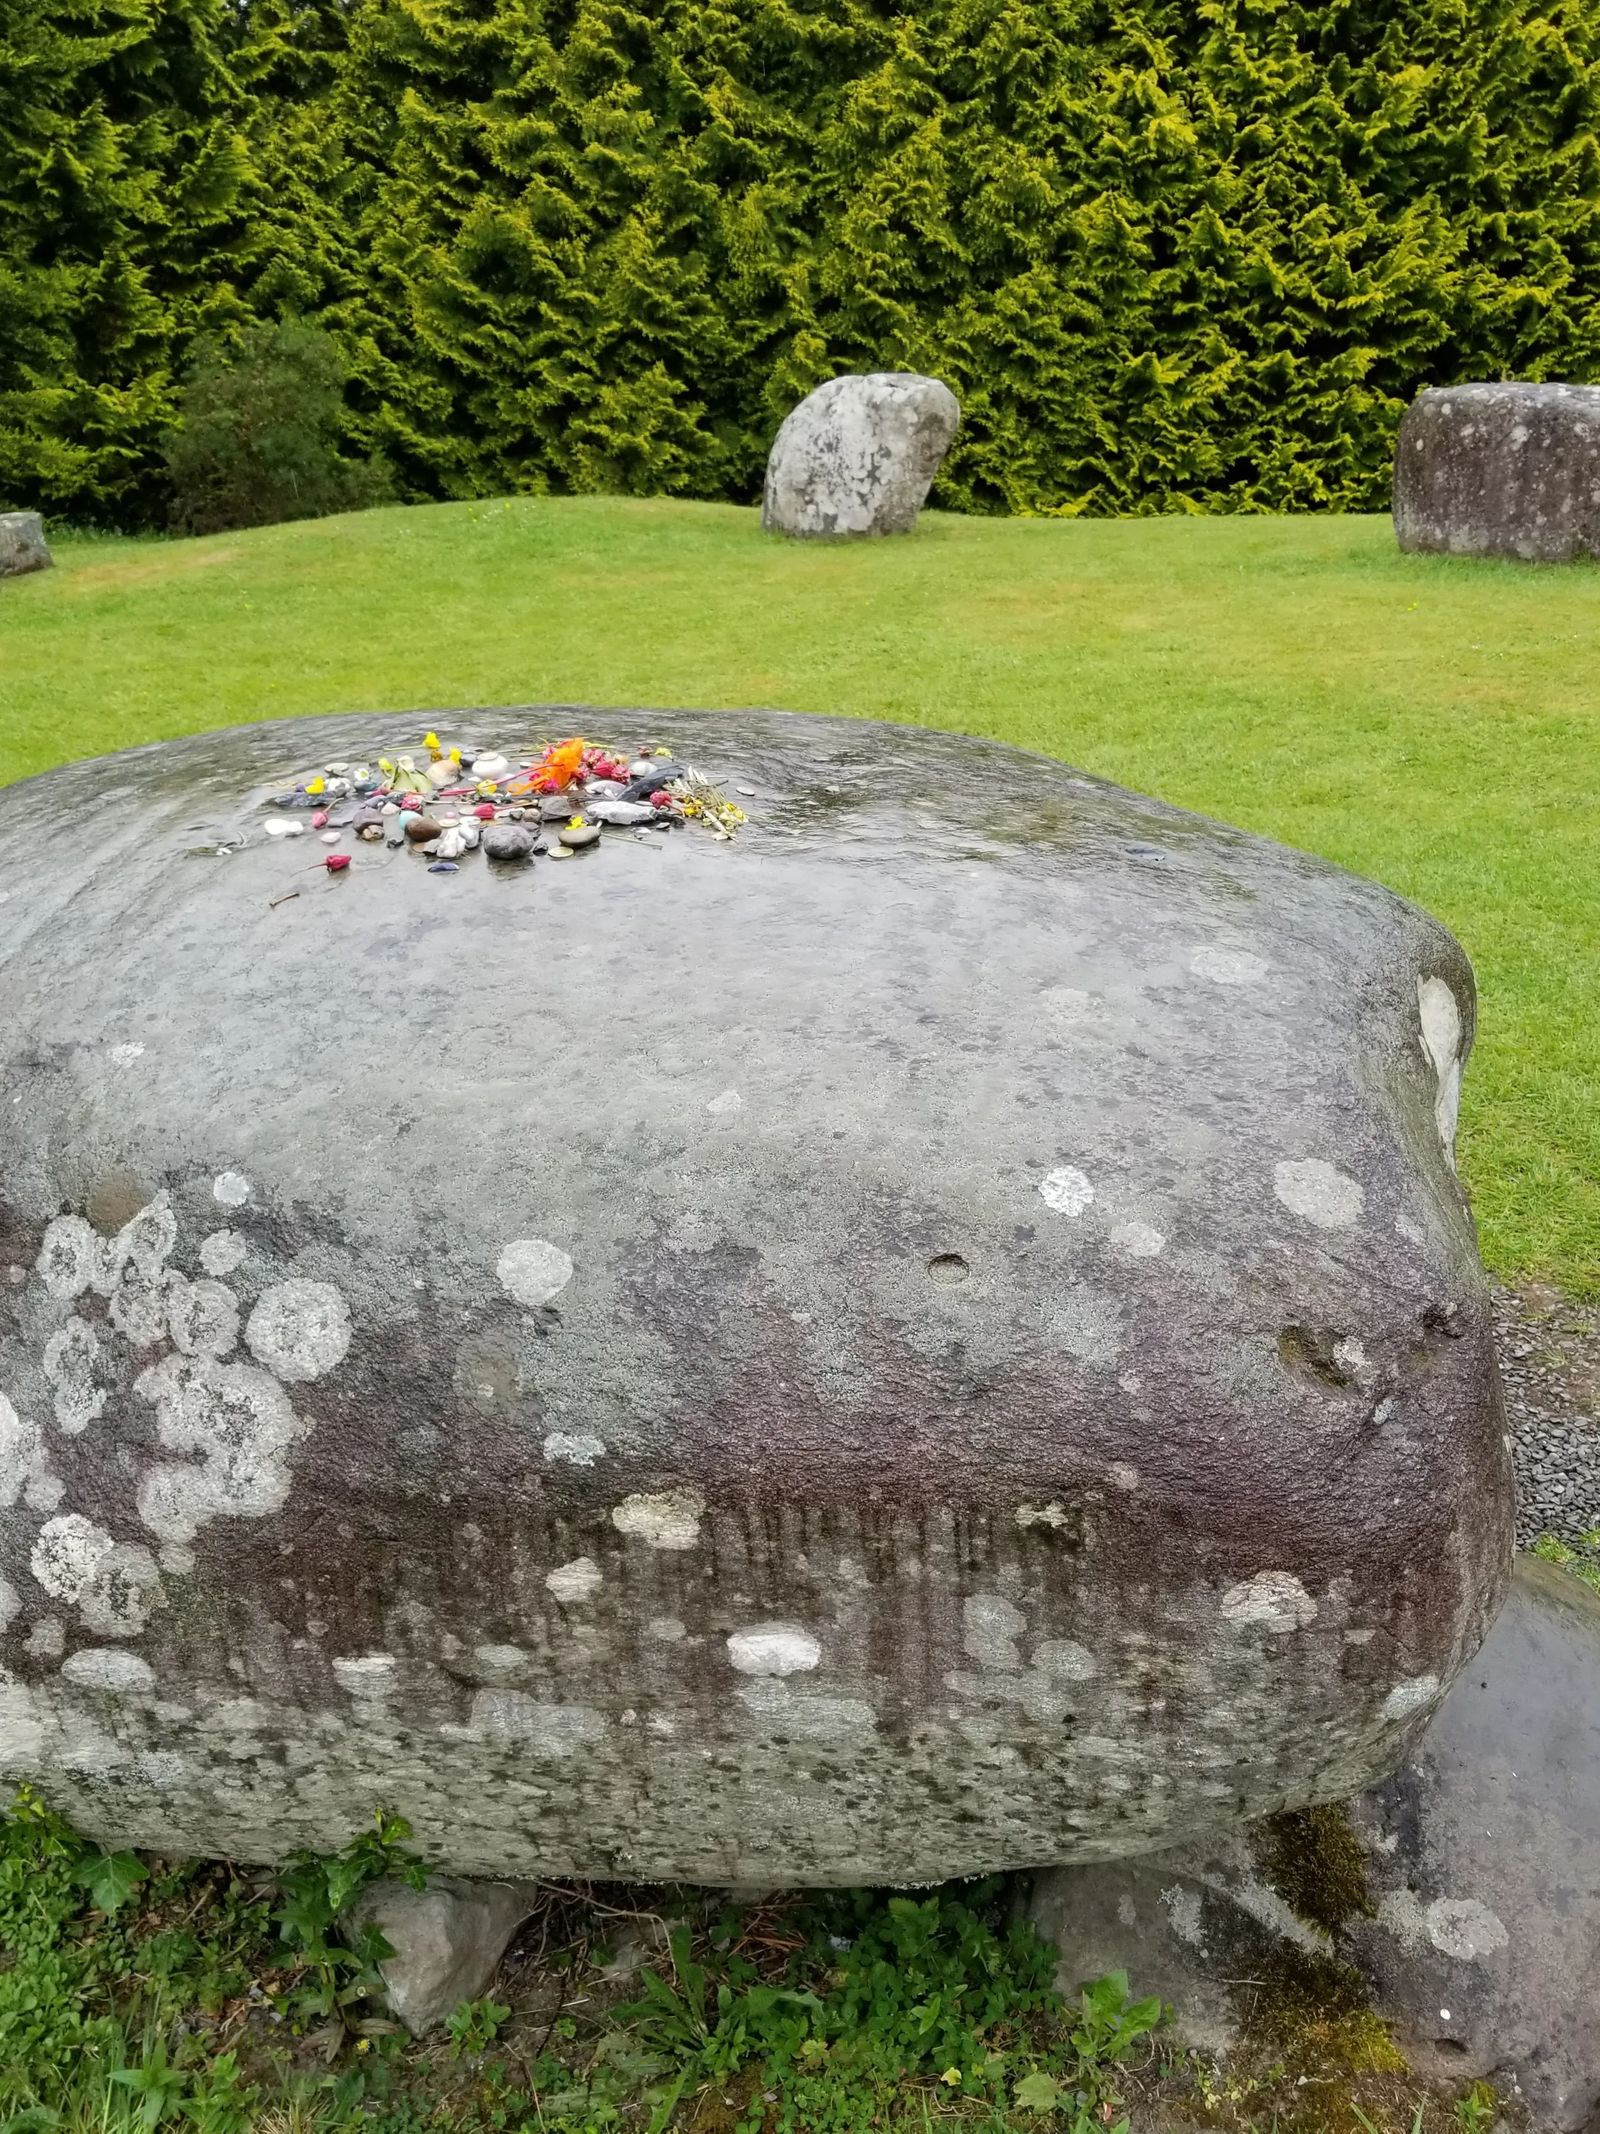 Photo of the central stone of the stone circle in Kenmare, Ireland.